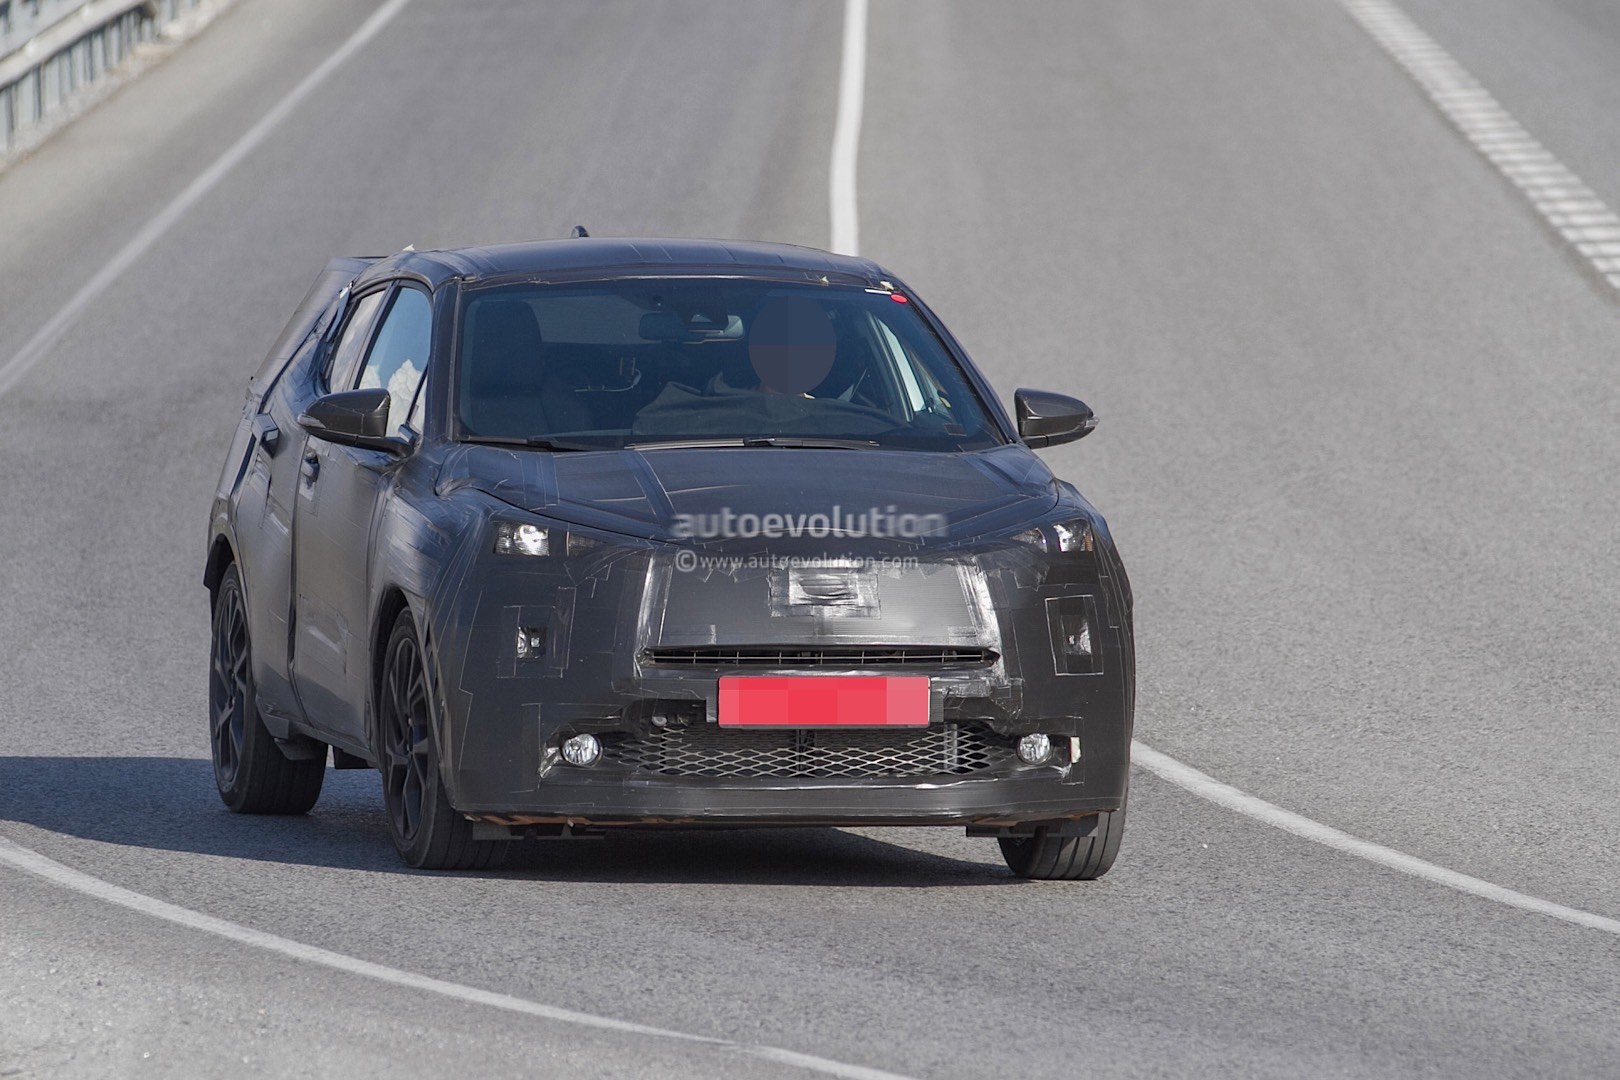 Spyshots: Toyota Crossover Spotted During Tests, Will ...